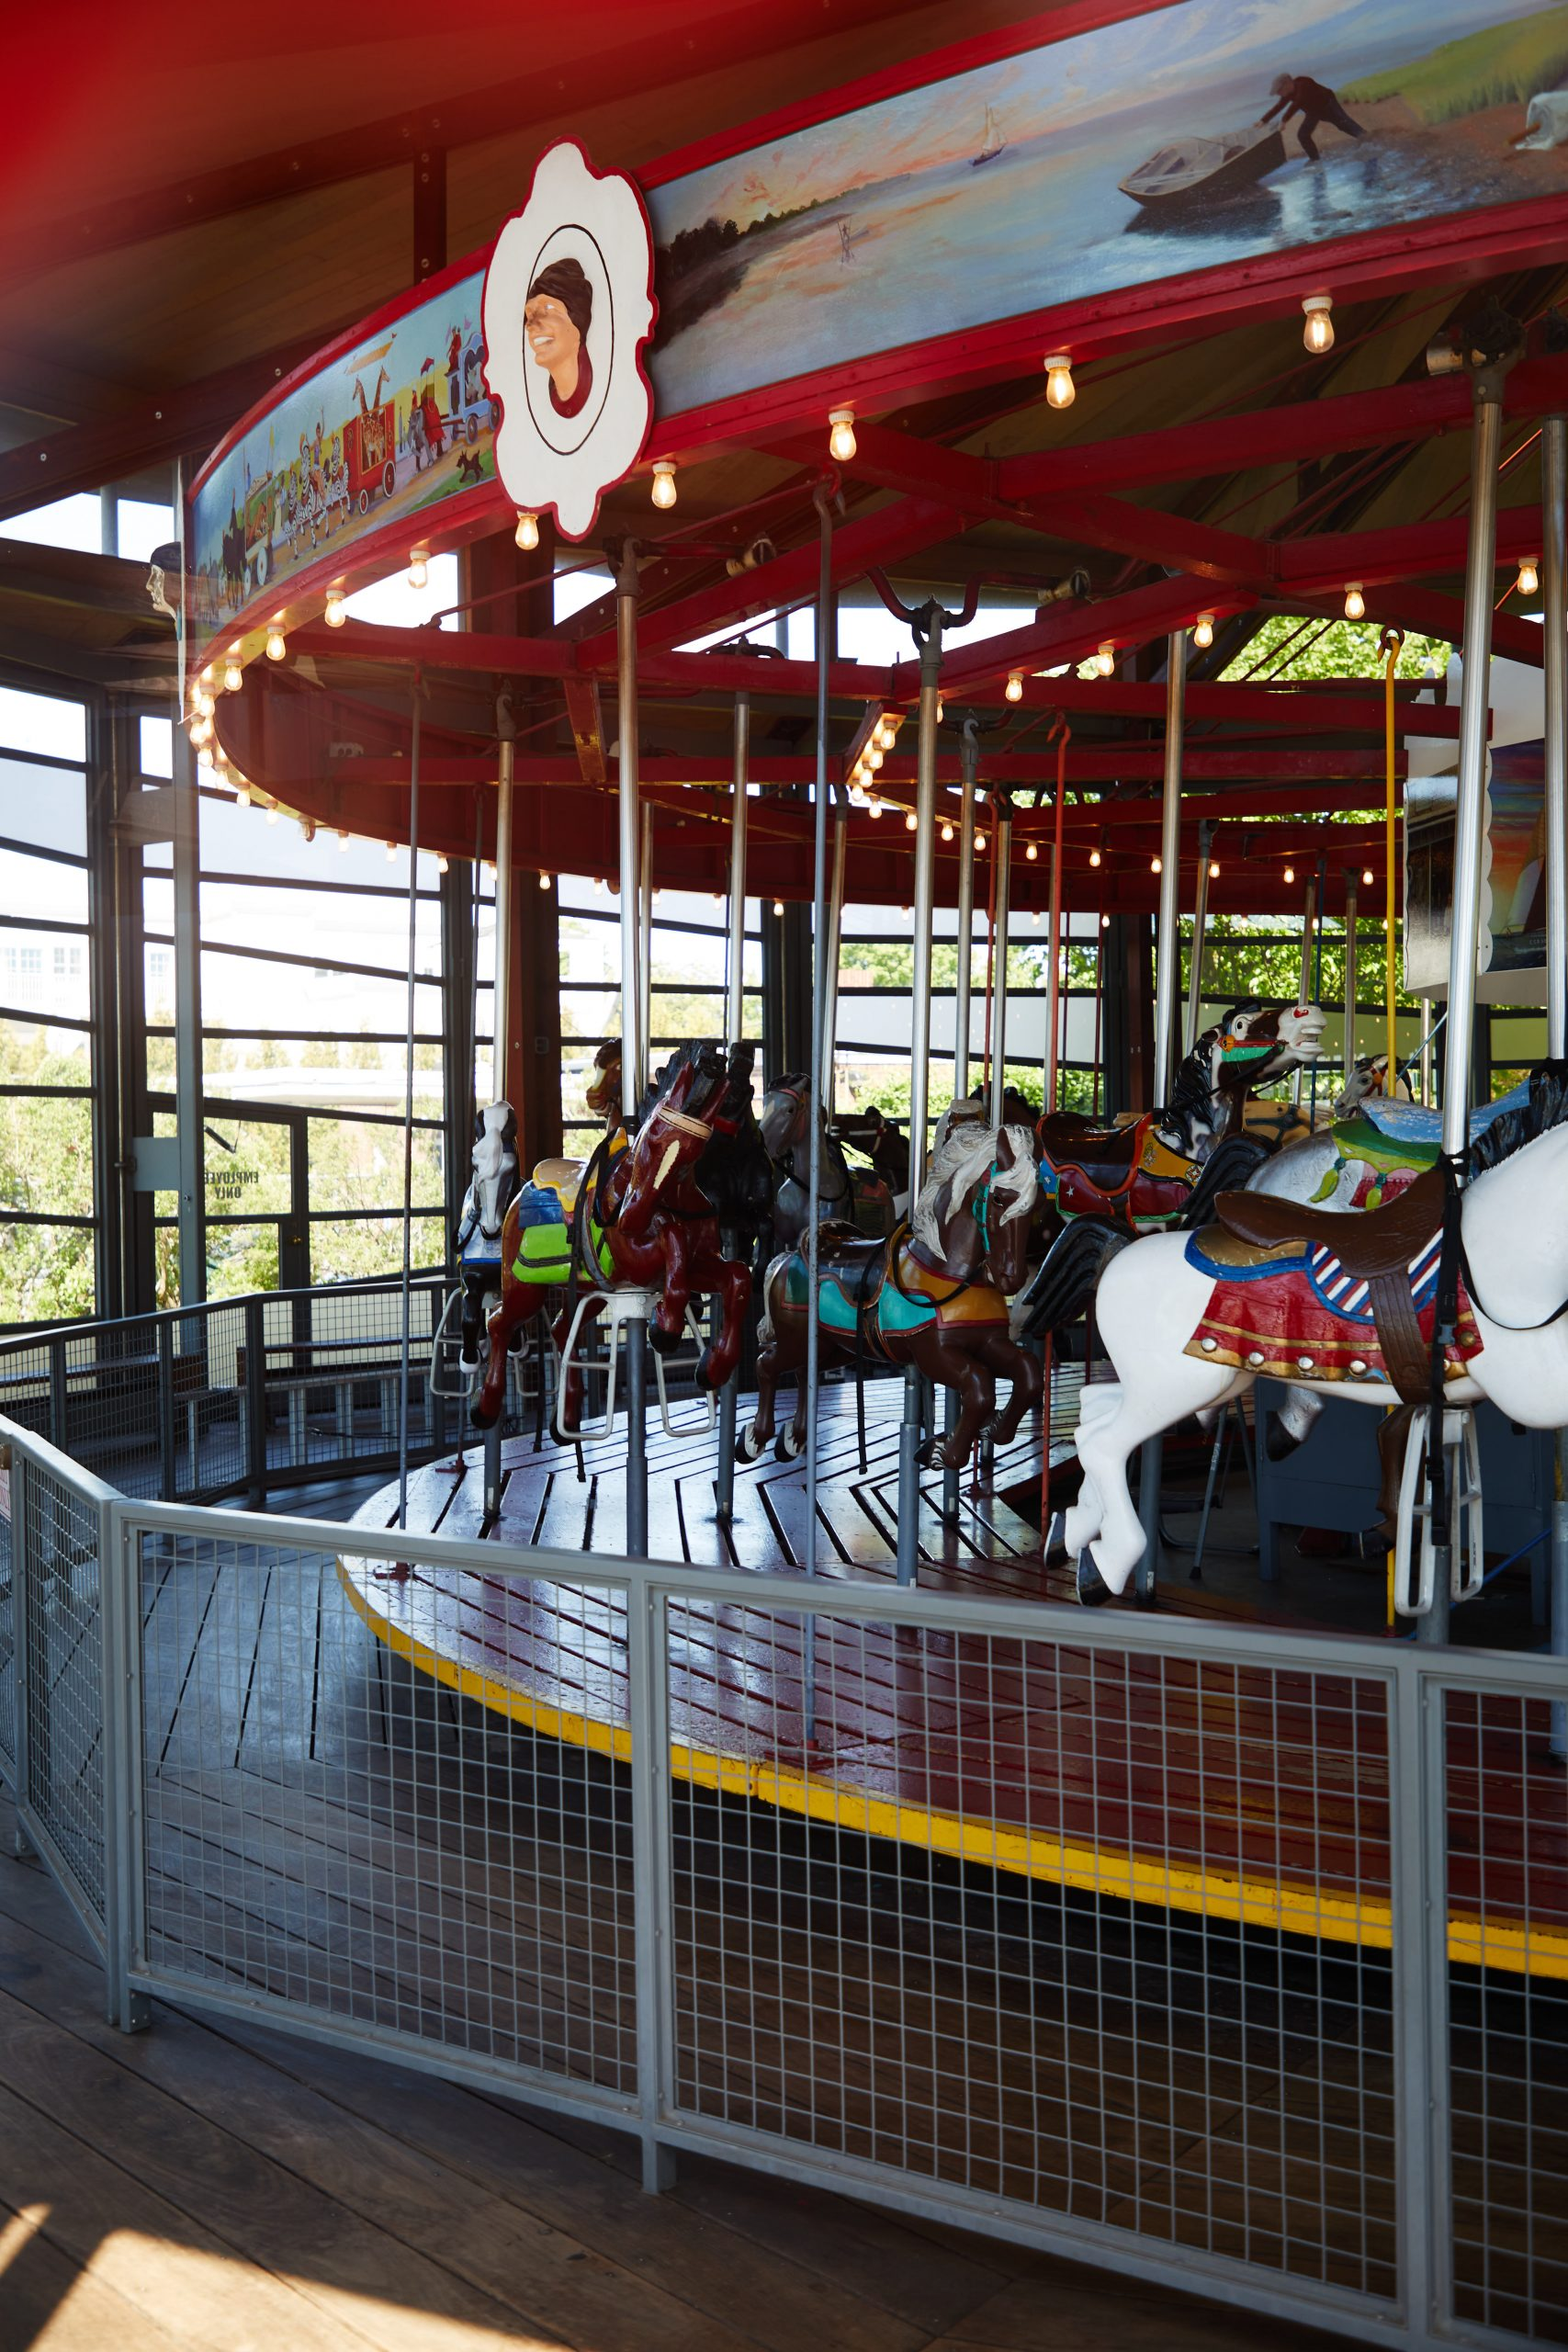 View of empty carousel from outside of fence